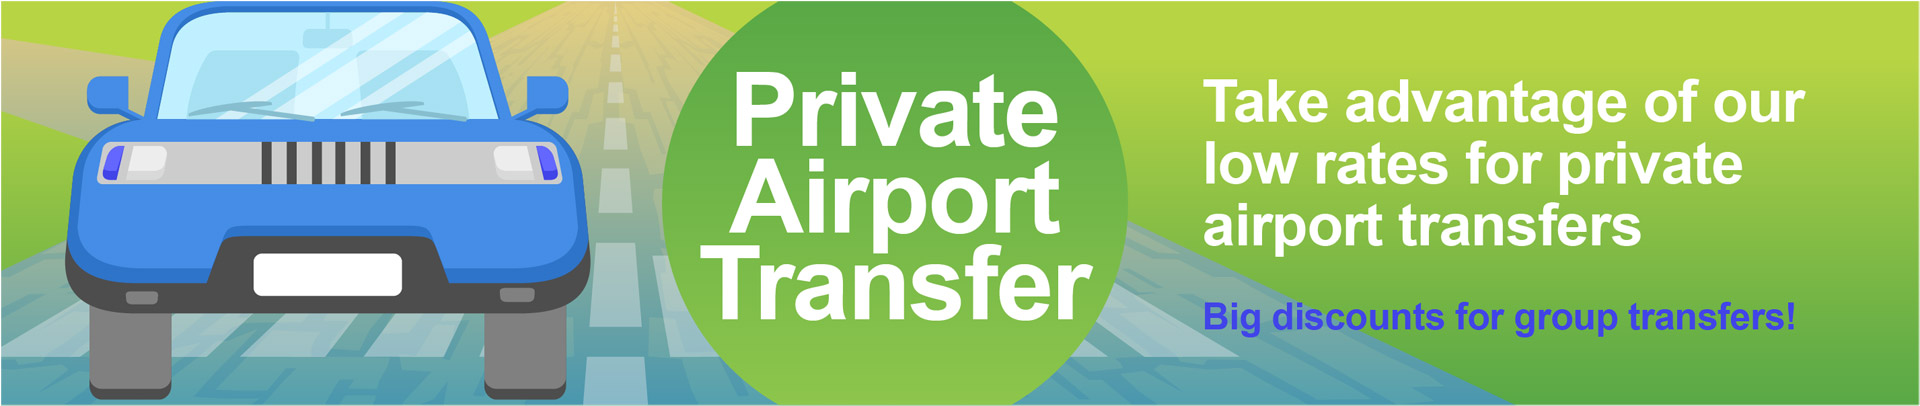 private-airport-transfer